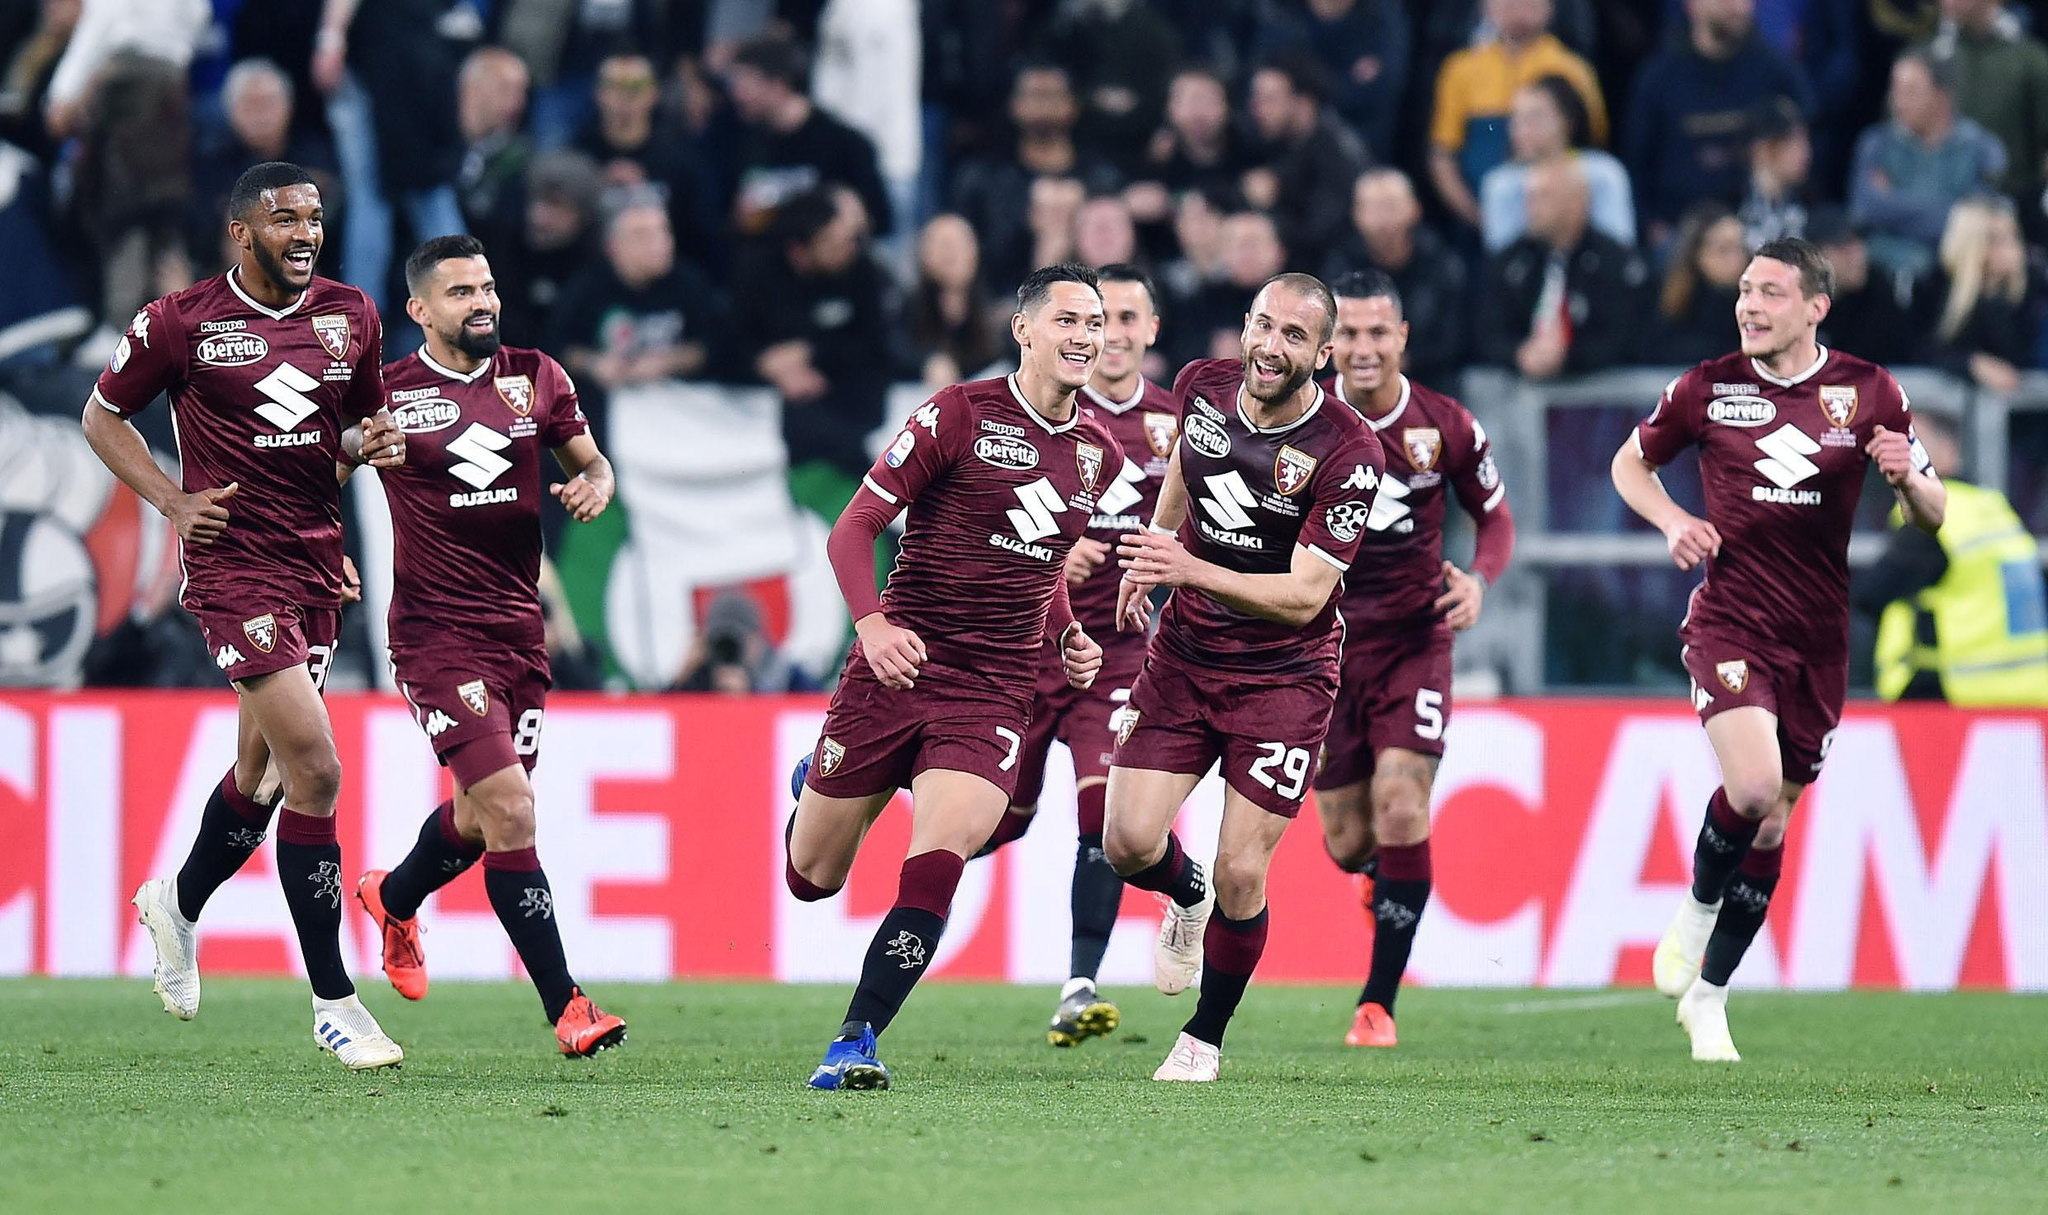 Turin (Italy), 03/05/2019.- <HIT>Torinos</HIT> Sasa Lukic jubilates with teammates after scoring the opening goal during the Italian Serie A soccer match Juventus FC vs <HIT>Torino</HIT> FC at the Allianz Stadium in Turin, Italy, 03 May 2019. (Abierto, Italia) EFE/EPA/ALESSANDRO DI MARCO